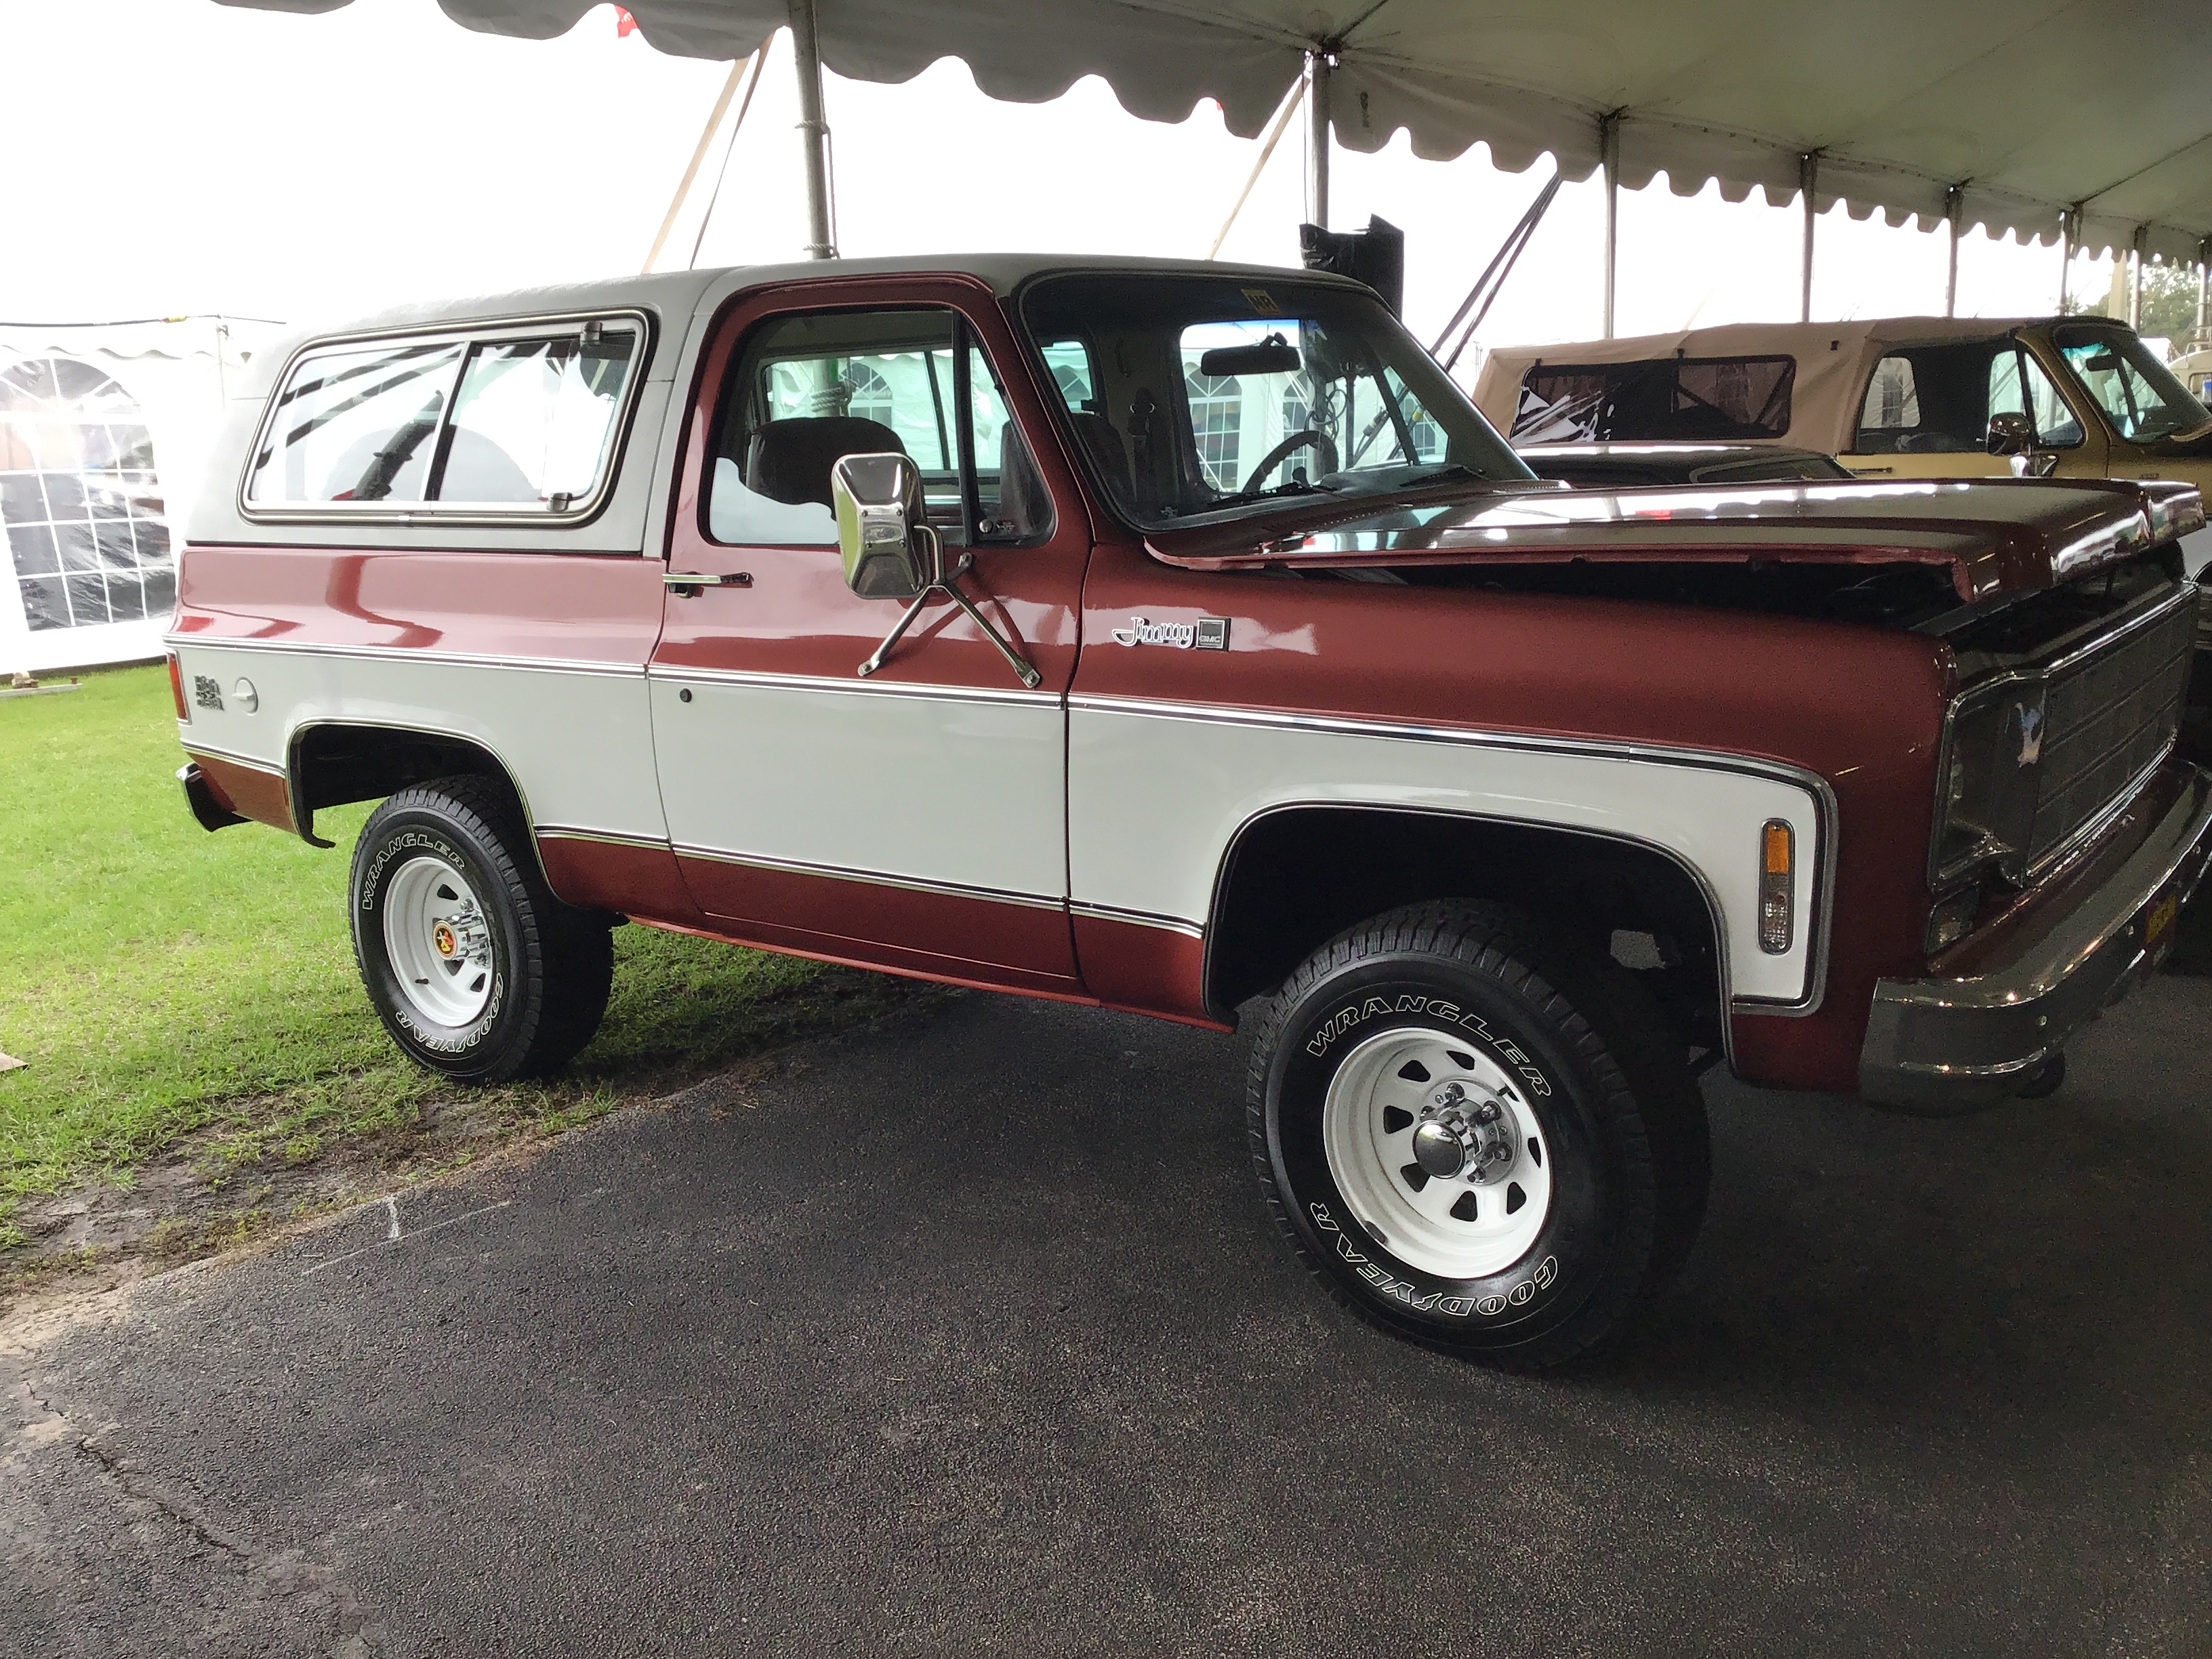 1978 Gmc C1500 Jimmy Sierra Values Hagerty Valuation Tool